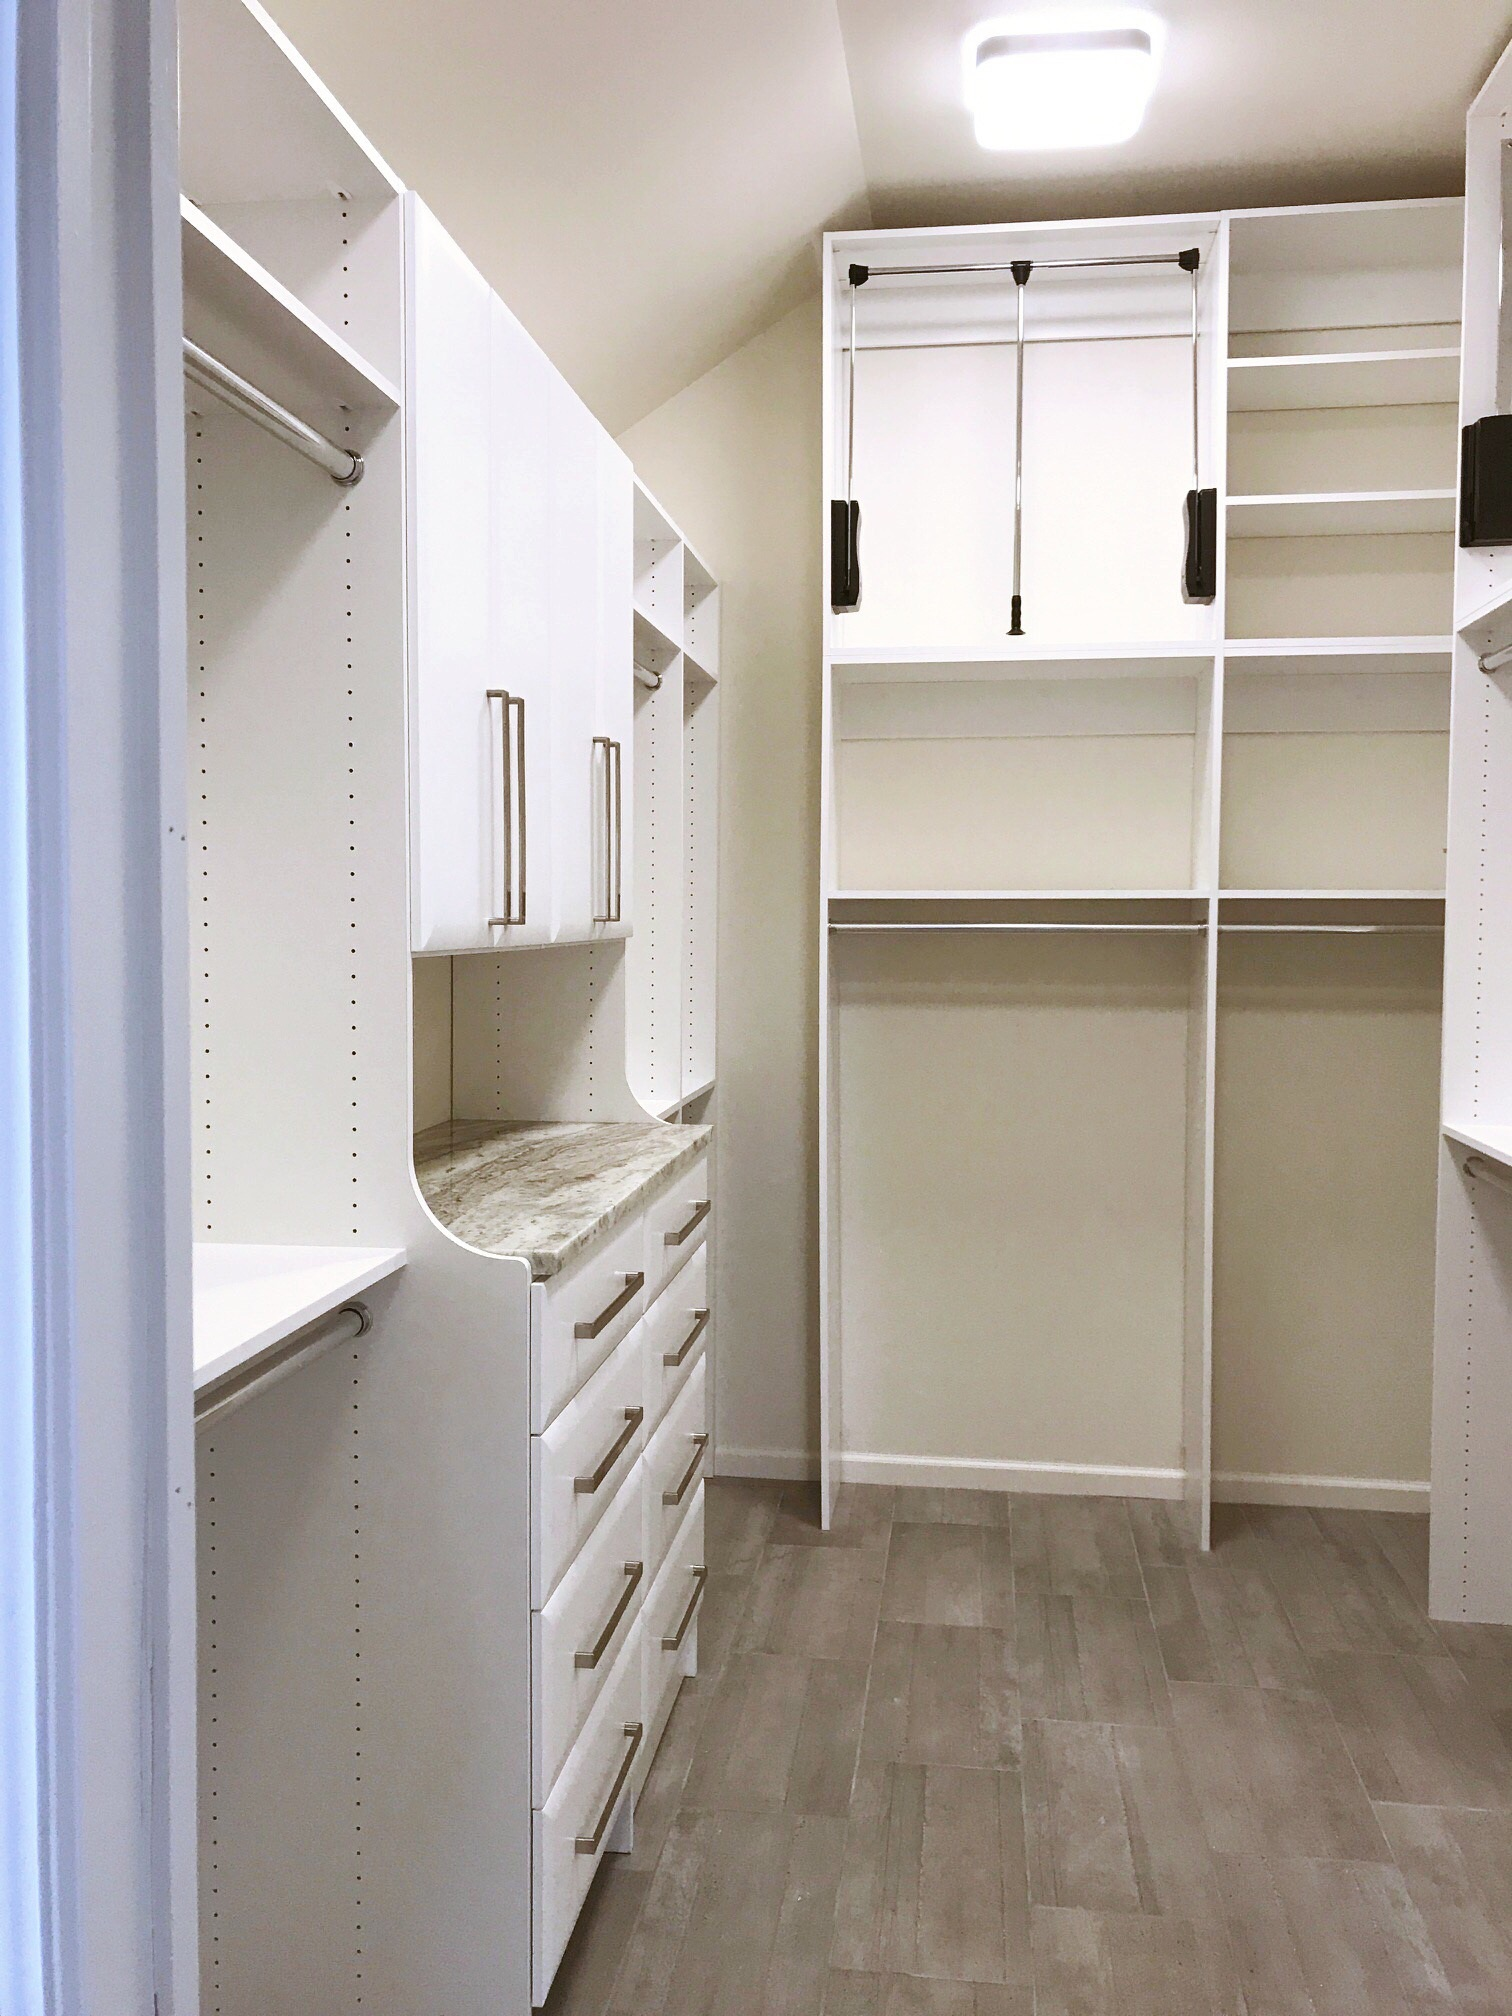 Closets of Tulsa designed this elegant master closet to reflect the look and feel of our client's custom home.  Call Closets of Tulsa  today for your FREE consultation and 3-D closet and garage design:  918.609.0214